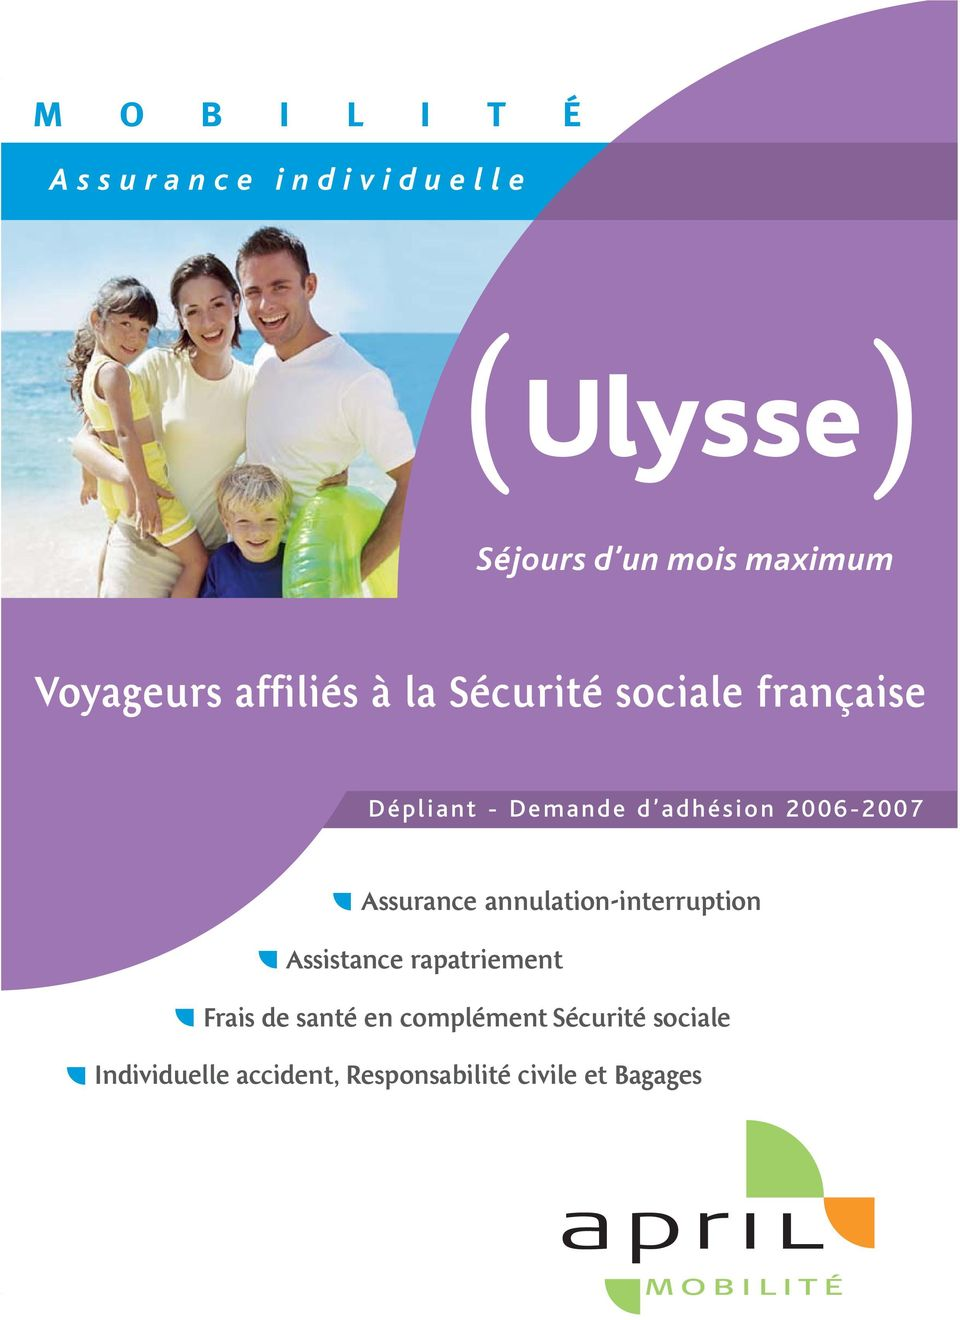 2006-2007 Assurance annulation-interruption Assistance rapatriement Frais de